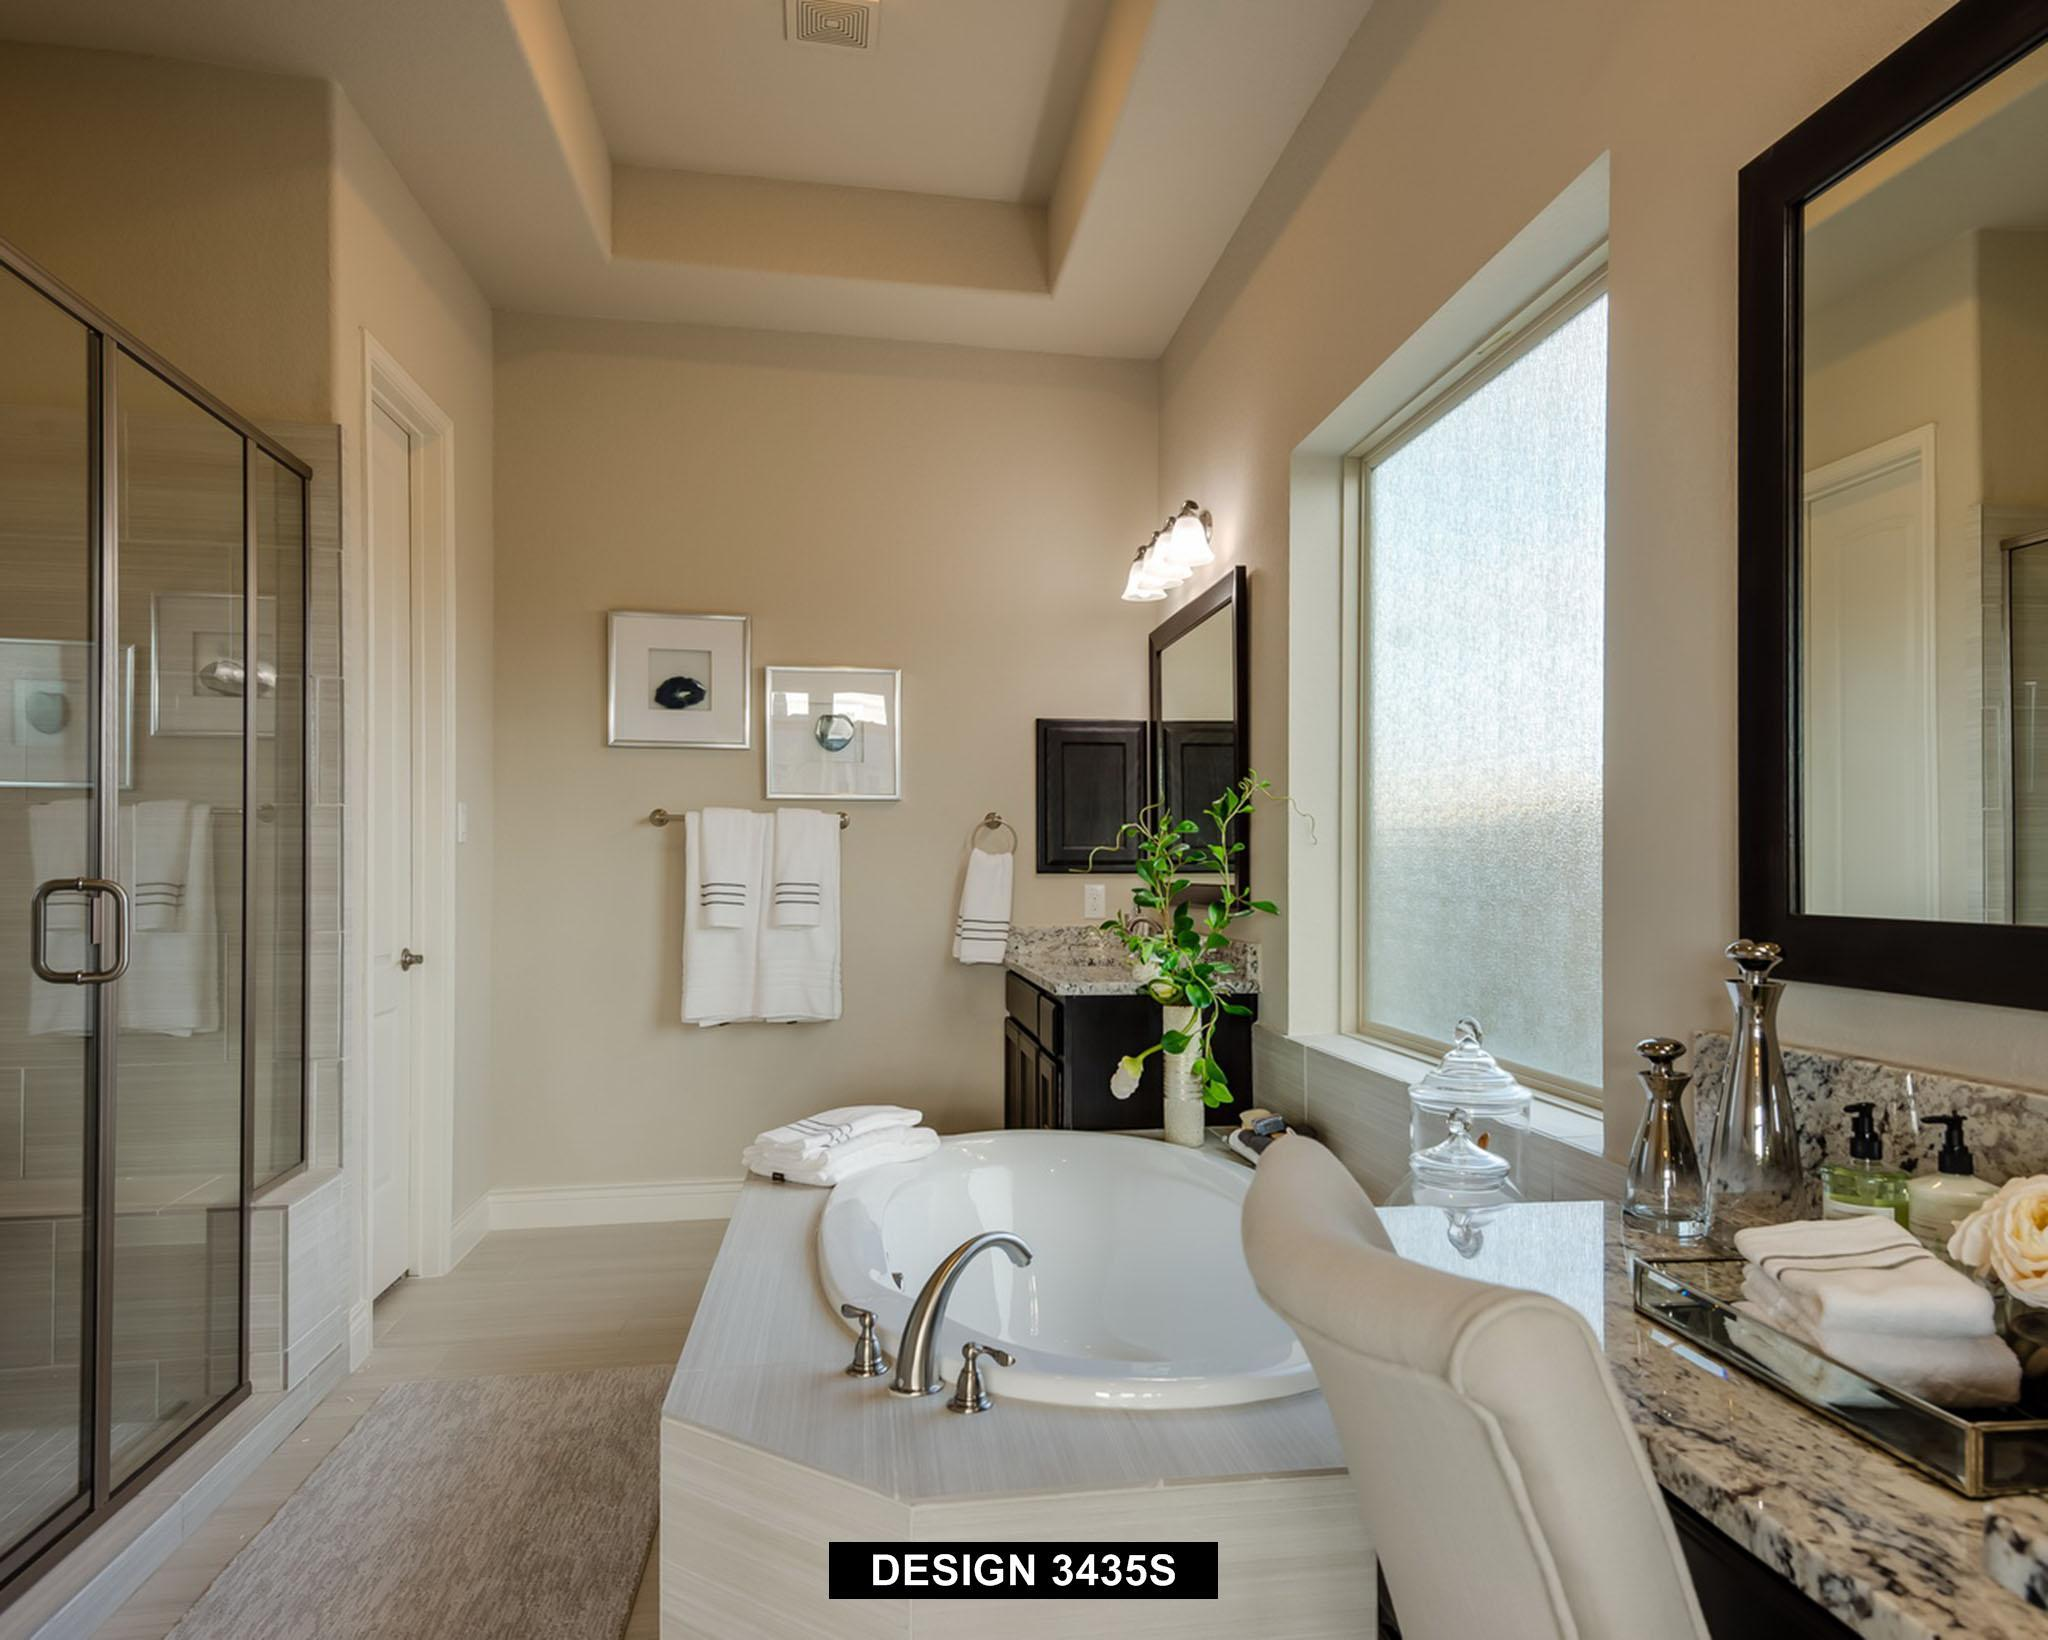 Bathroom featured in the 3435S By Perry Homes in Austin, TX